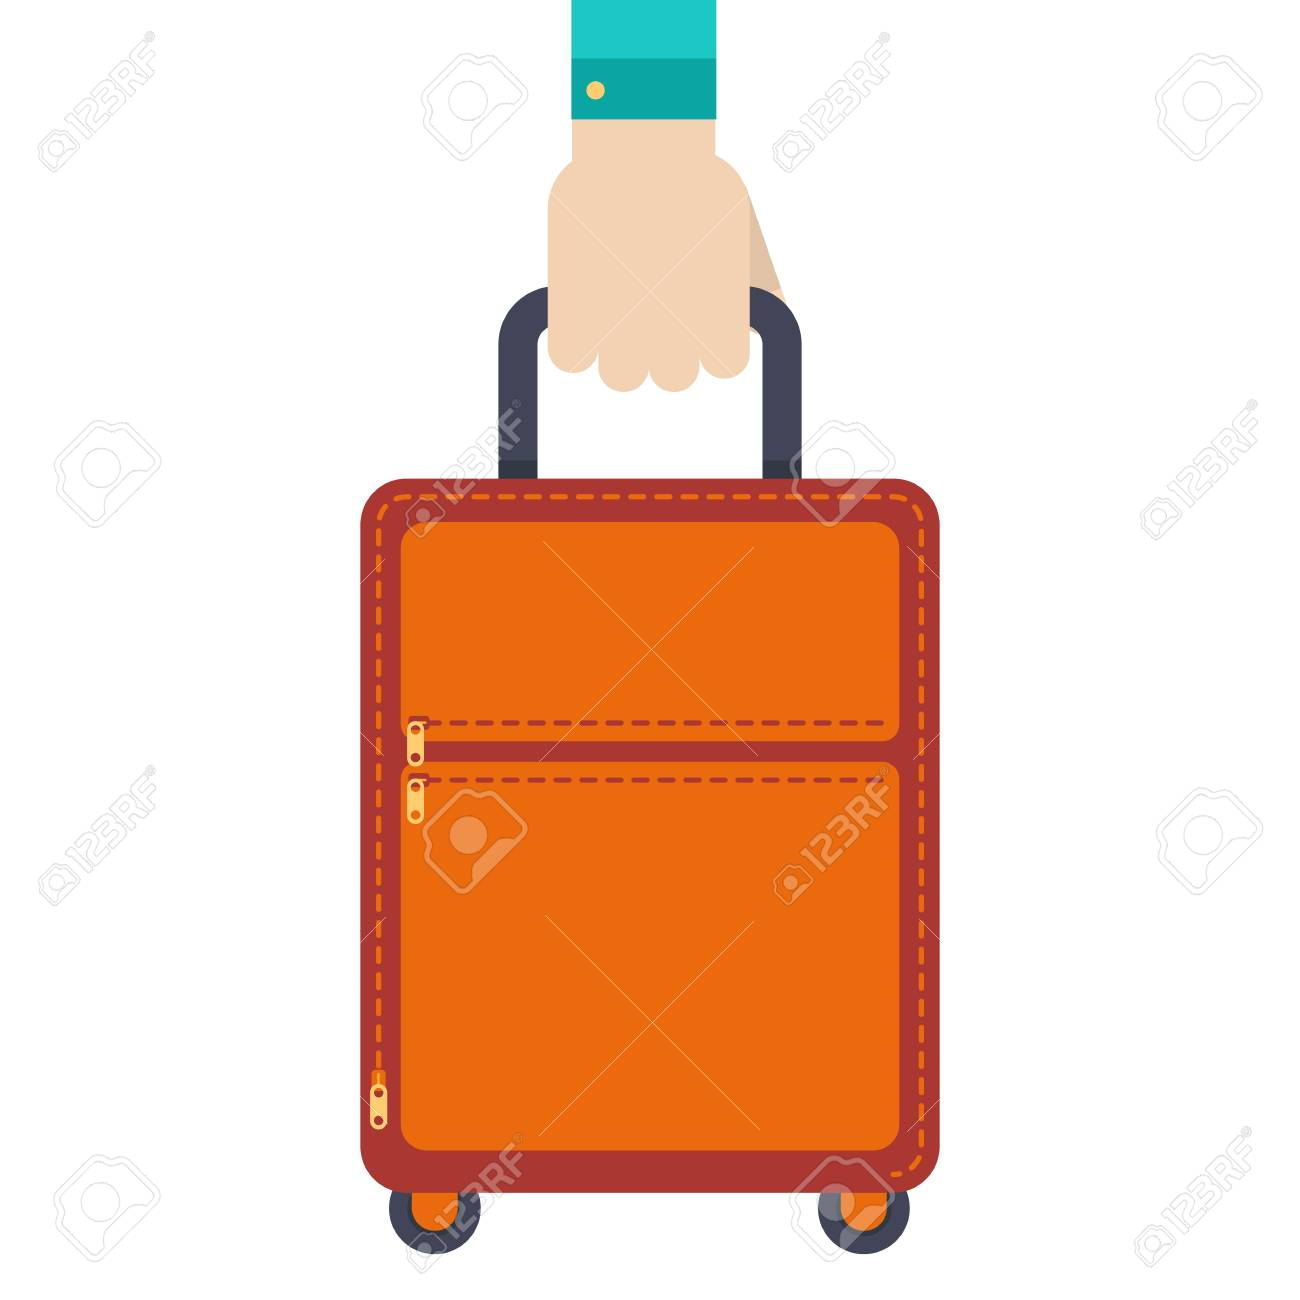 Hand Holding Travel Bag Vector Illustration On White Background Royalty Free Cliparts Vectors And Stock Illustration Image 89906277